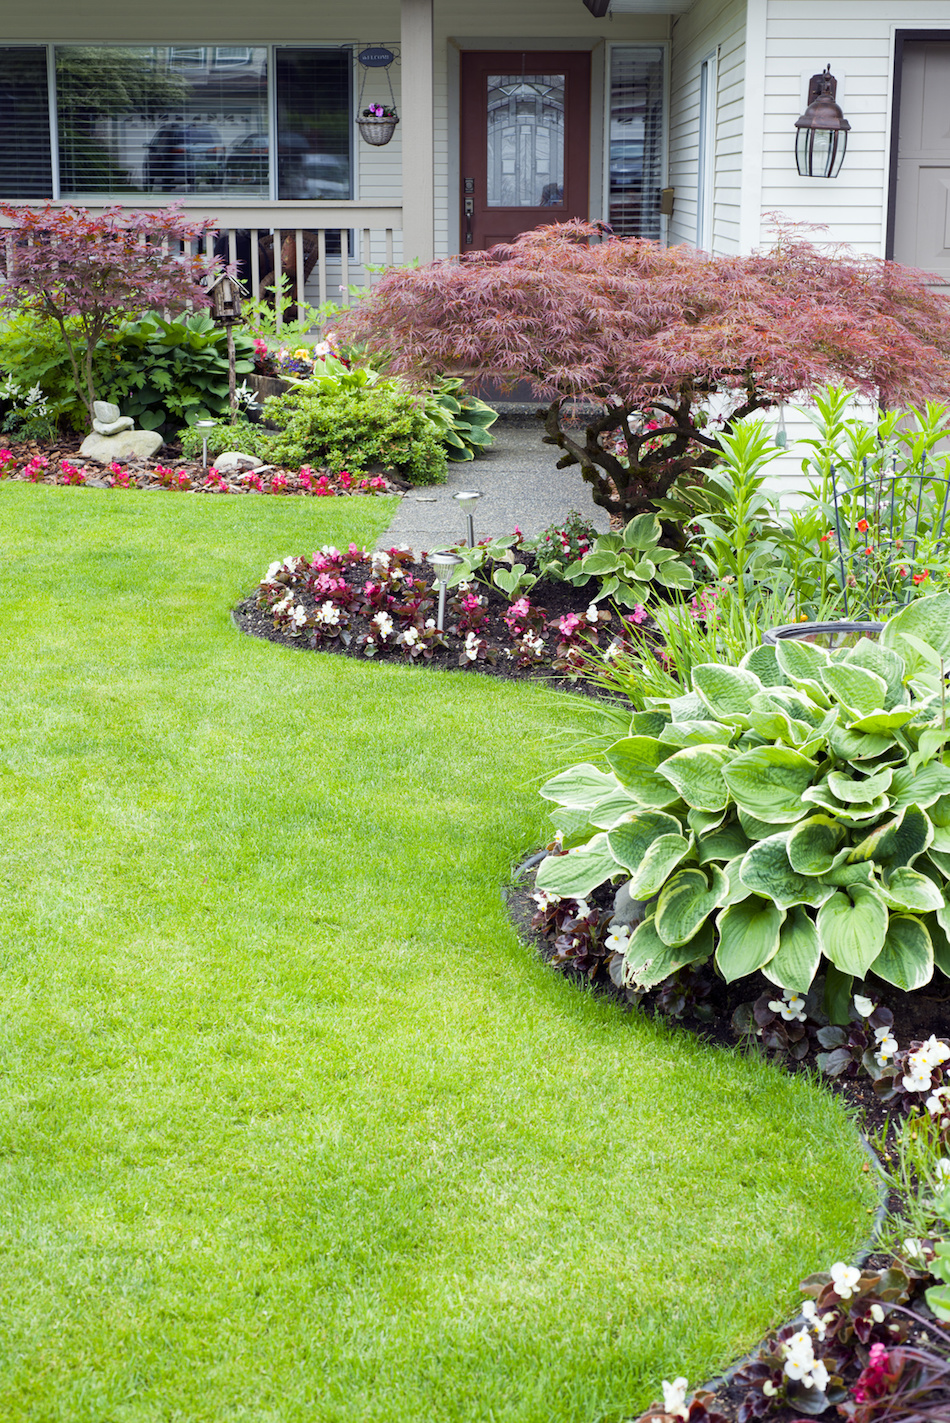 How to Get the Most Out of Your Curb Appeal